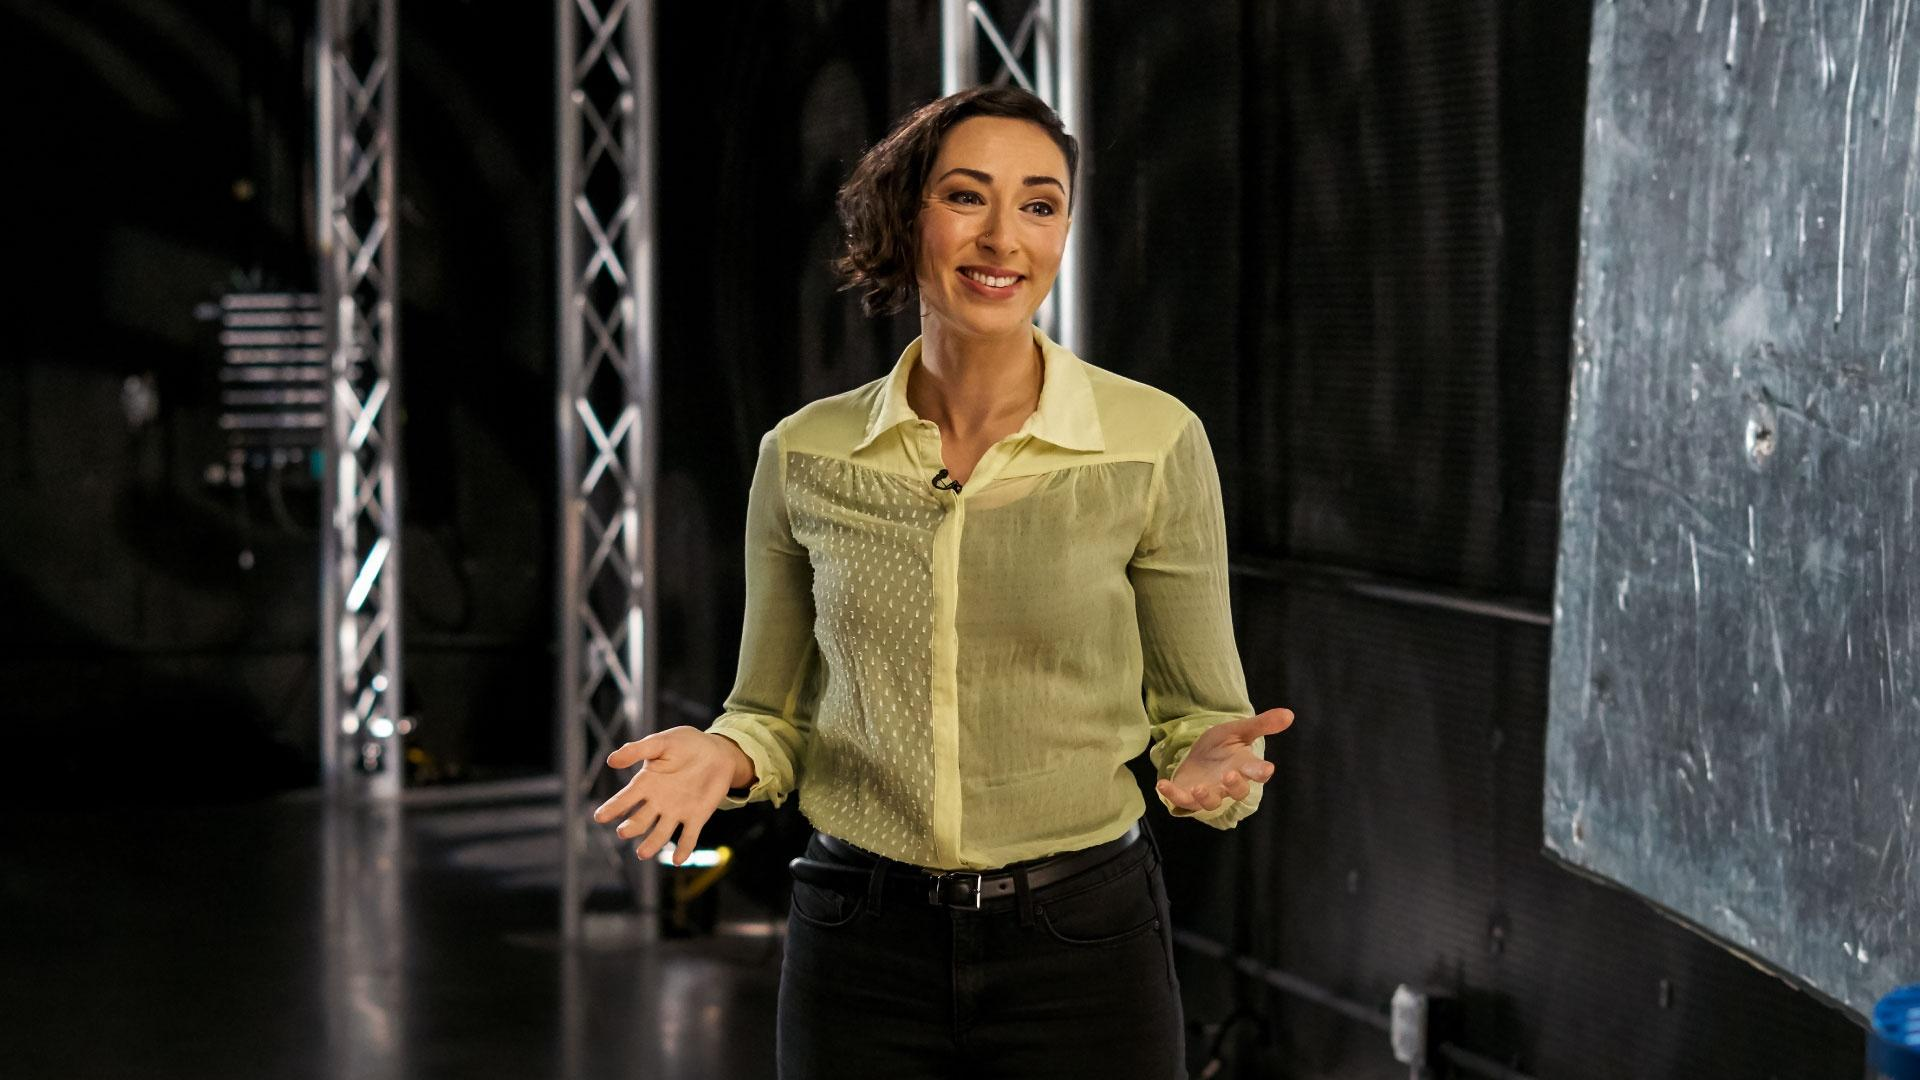 AHA! host Lara Ayad holds her arms out, hands open, while reading from a teleprompter during a shoot.